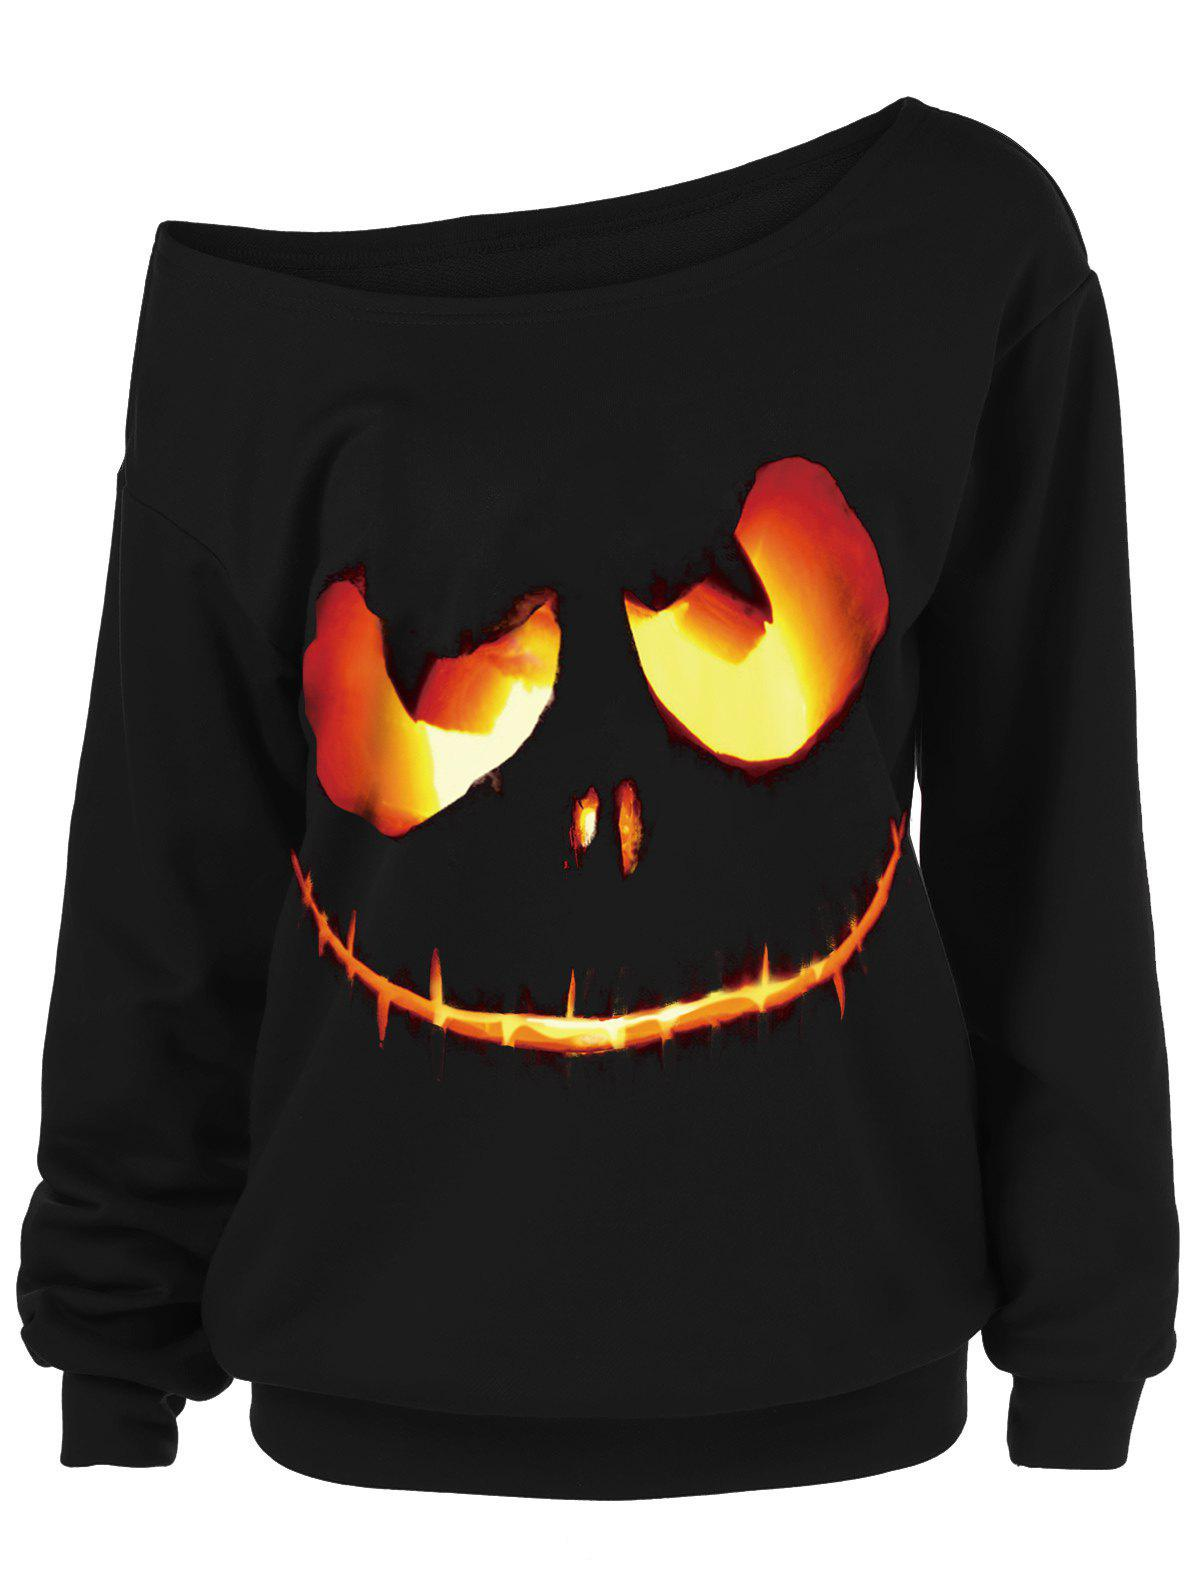 Ghost Face Plus Size Skew Neck Halloween Sweatshirt plus size halloween bat stars skew neck sweatshirt